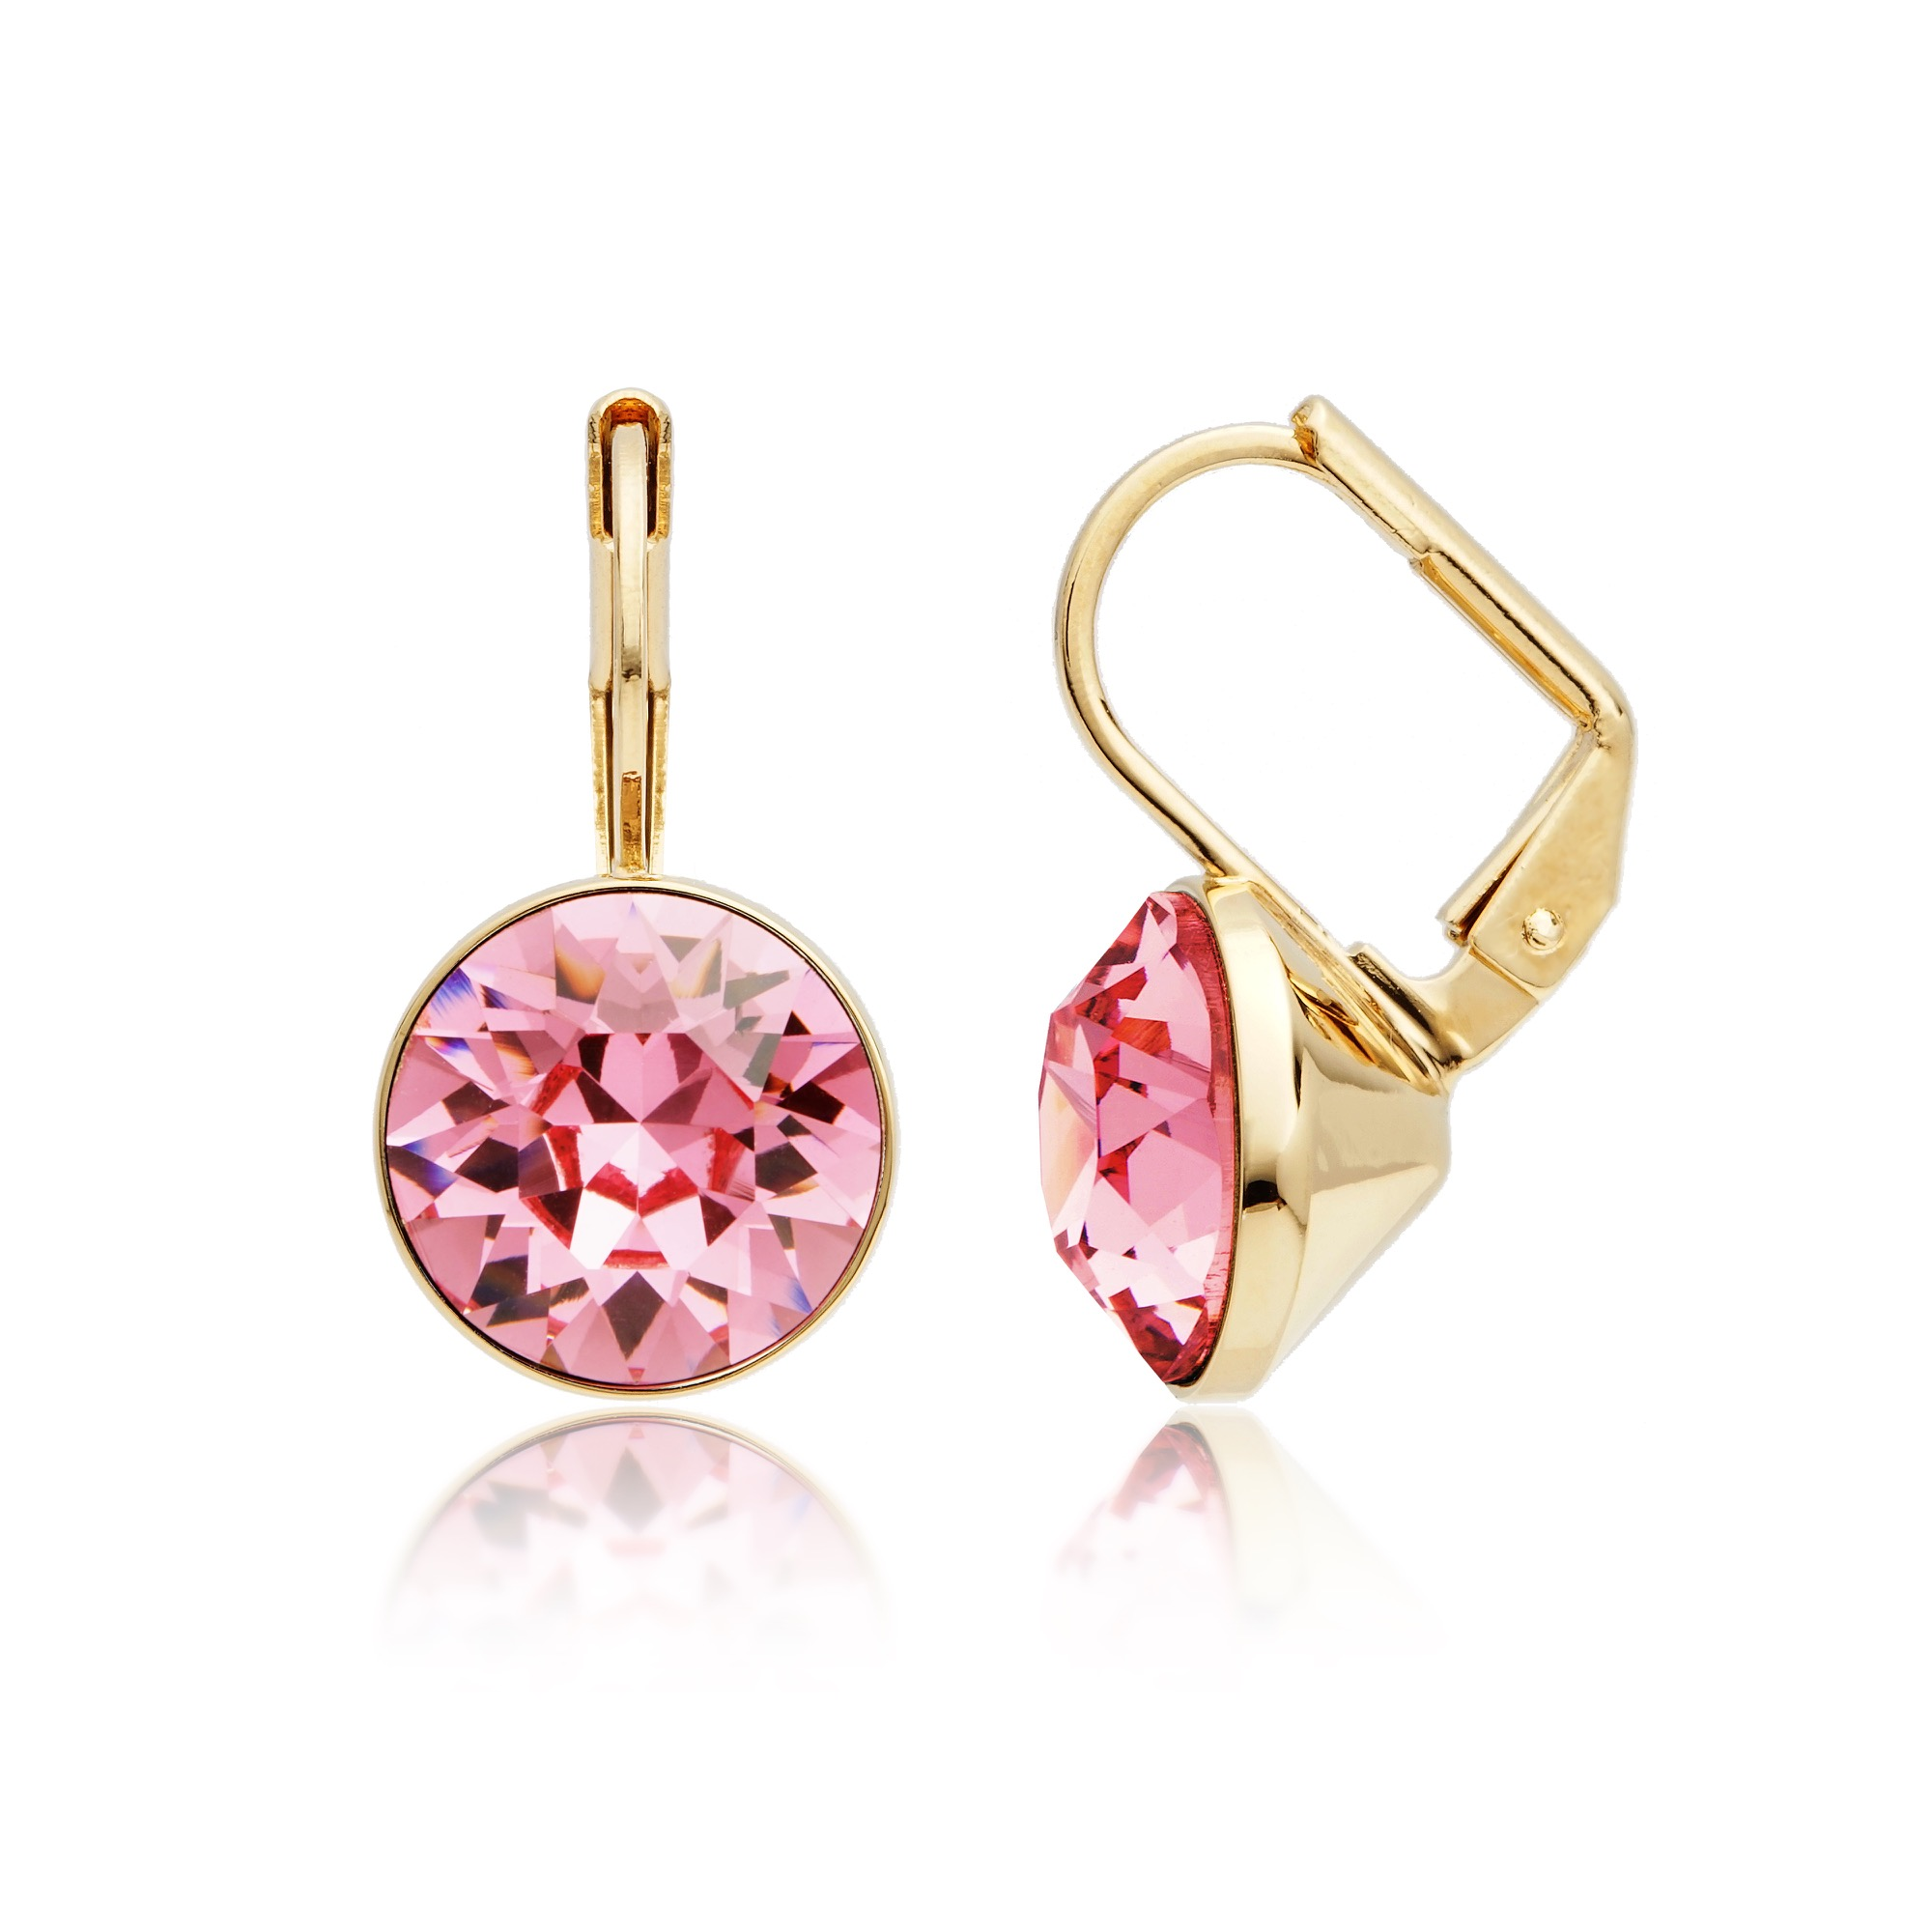 029203a338a Details about MYJS Bella Mini Light Rose with Swarovski Crystal Drop  Earrings 16k Gold Plated